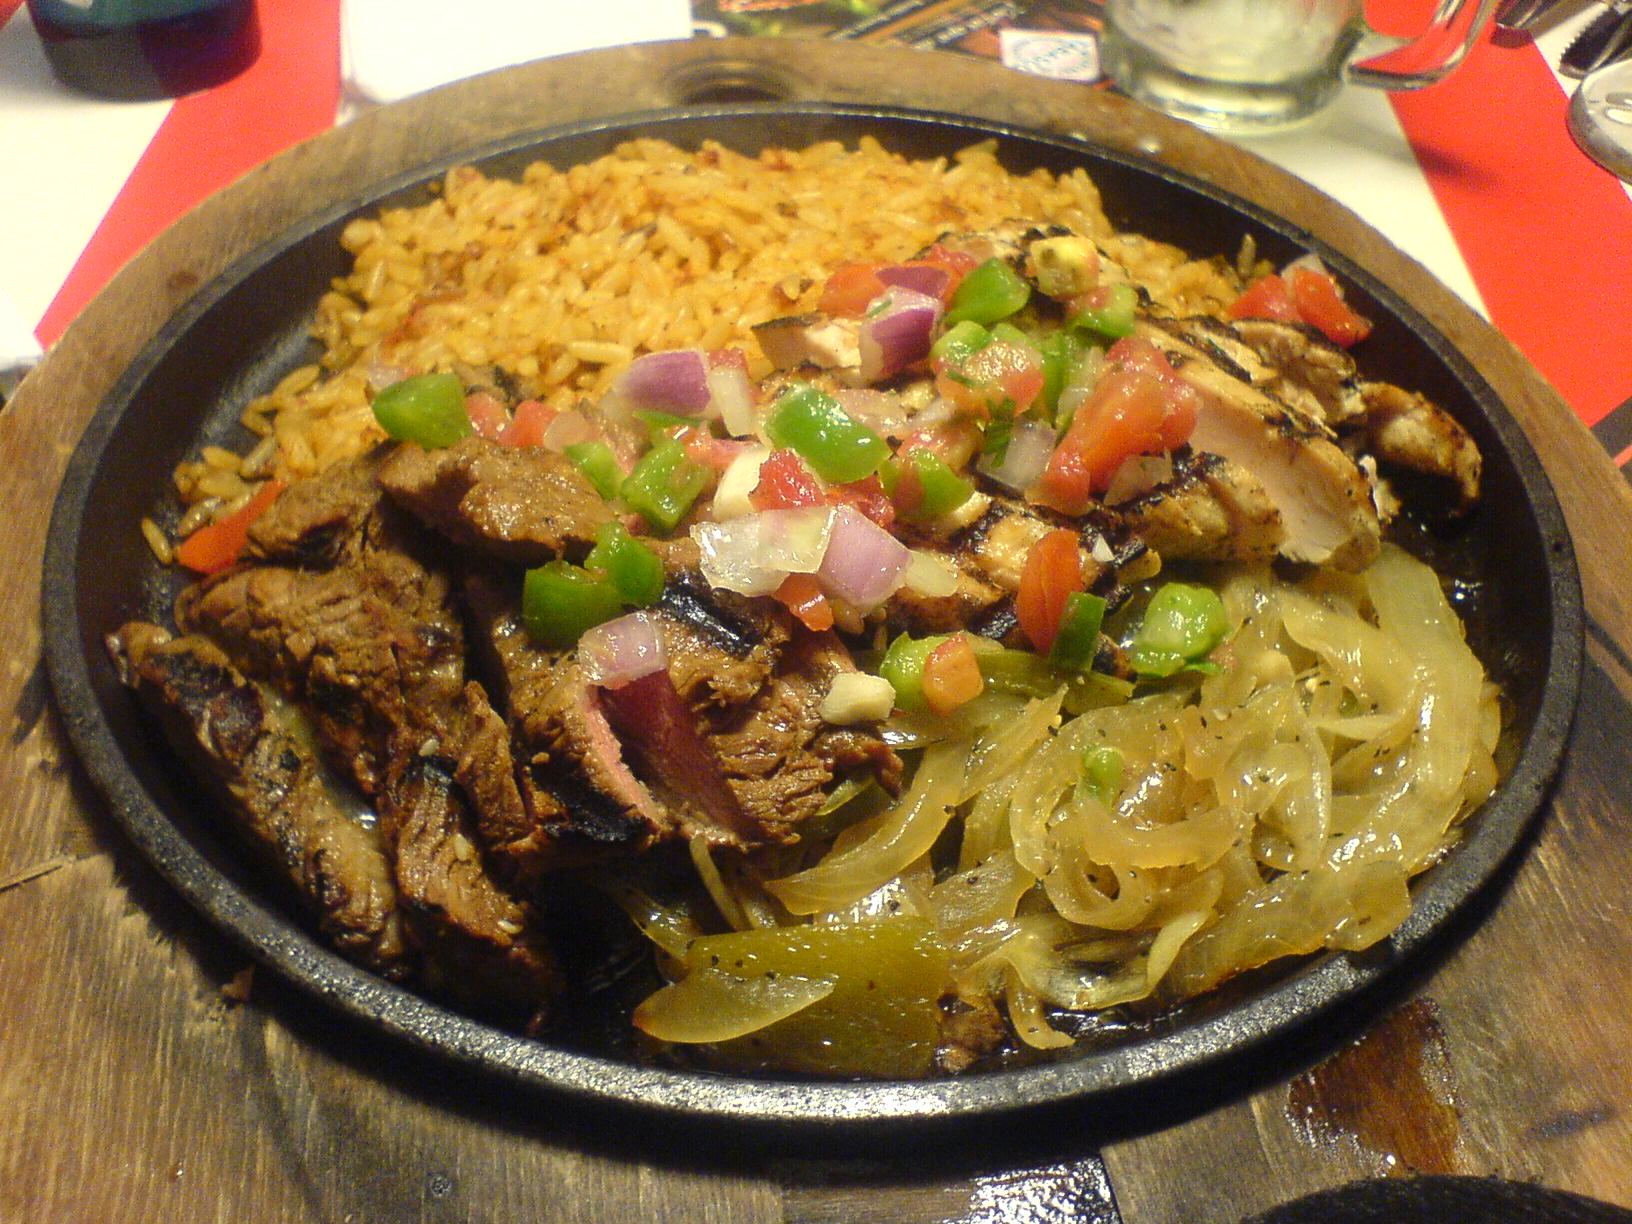 ... --Beef and chicken fajitas.jpg - Wikipedia, the free encyclopedia